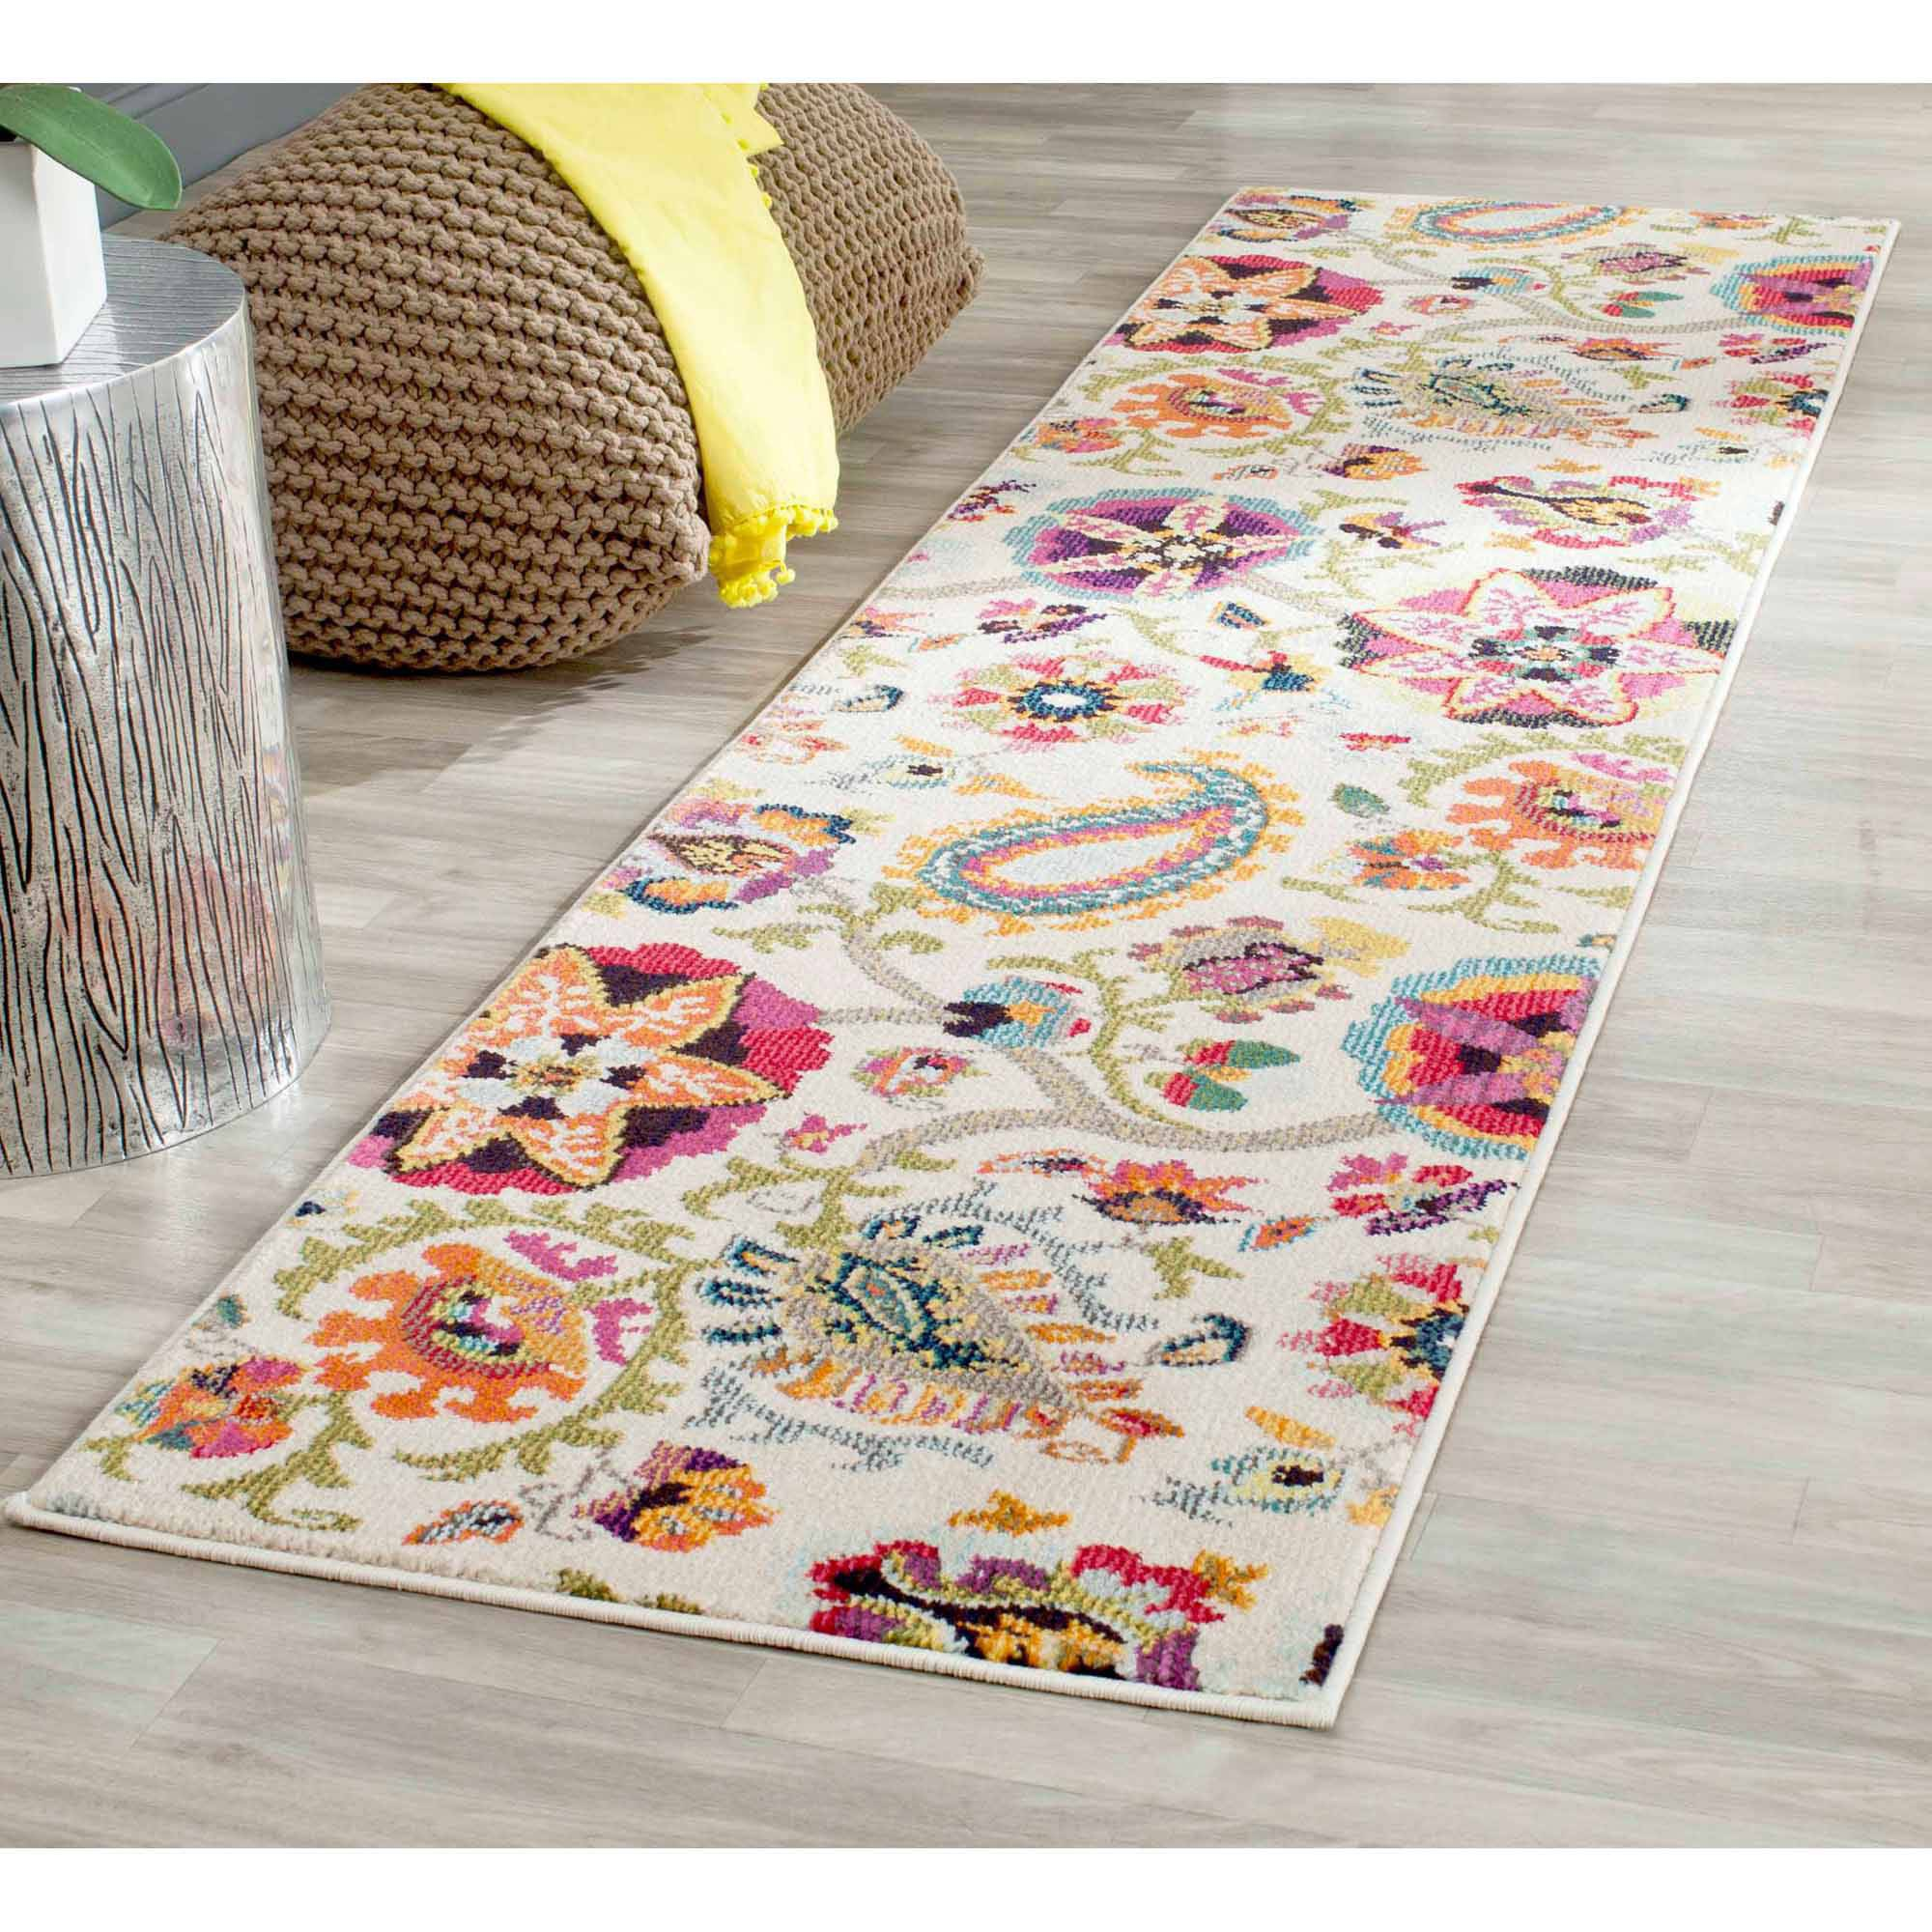 Safavieh Monaco Damian Floral Area Rug or Runner by Safavieh